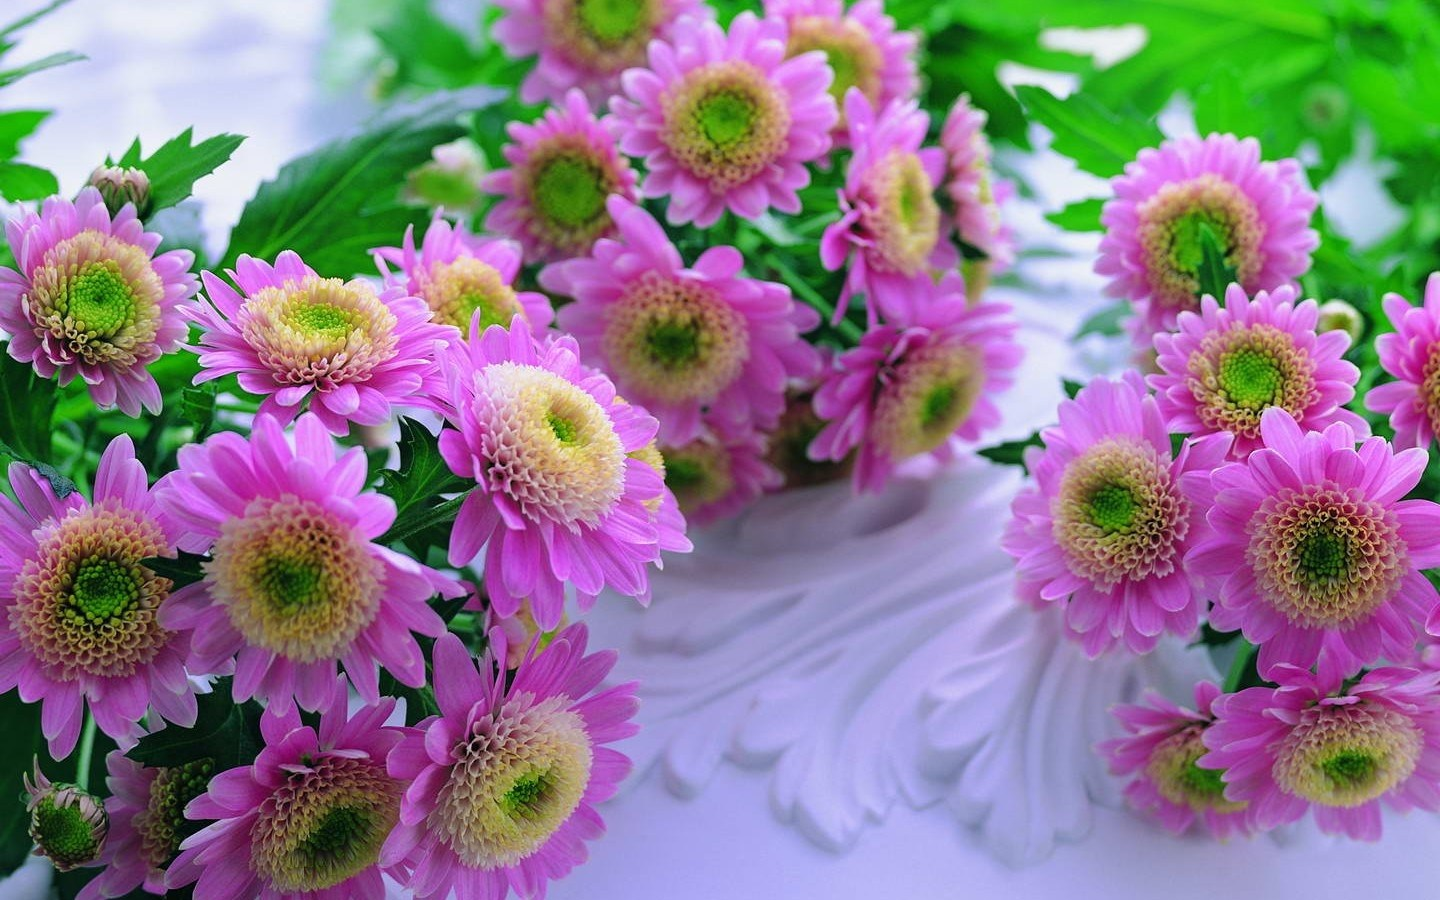 World's Top 100 Beautiful Flowers Images Wallpaper Photos Free.